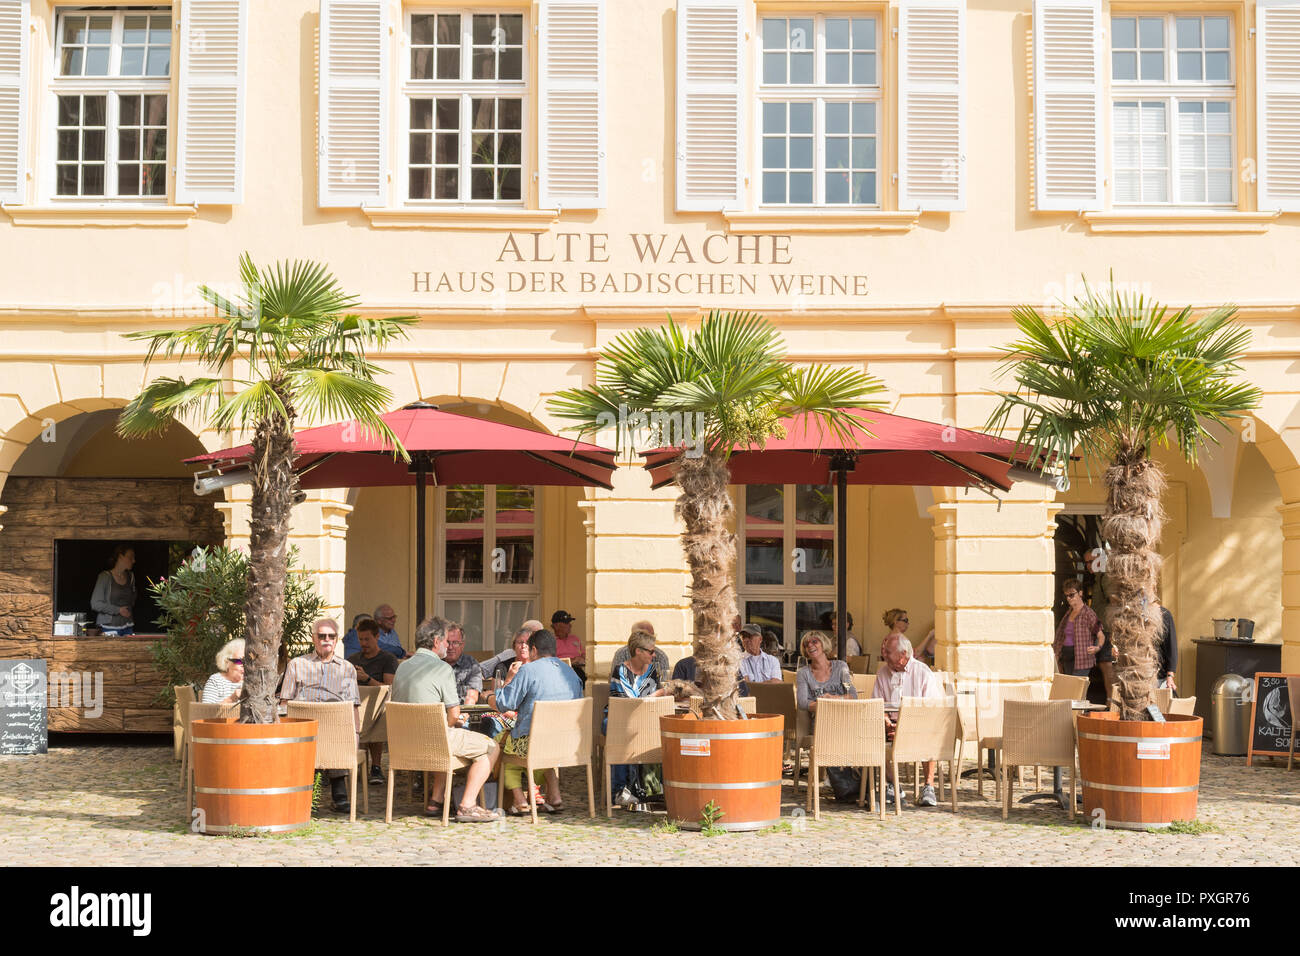 Alte Wache - house of baden wines - Freiburg im Breisgau, Cathedral Square, Germany - Stock Image